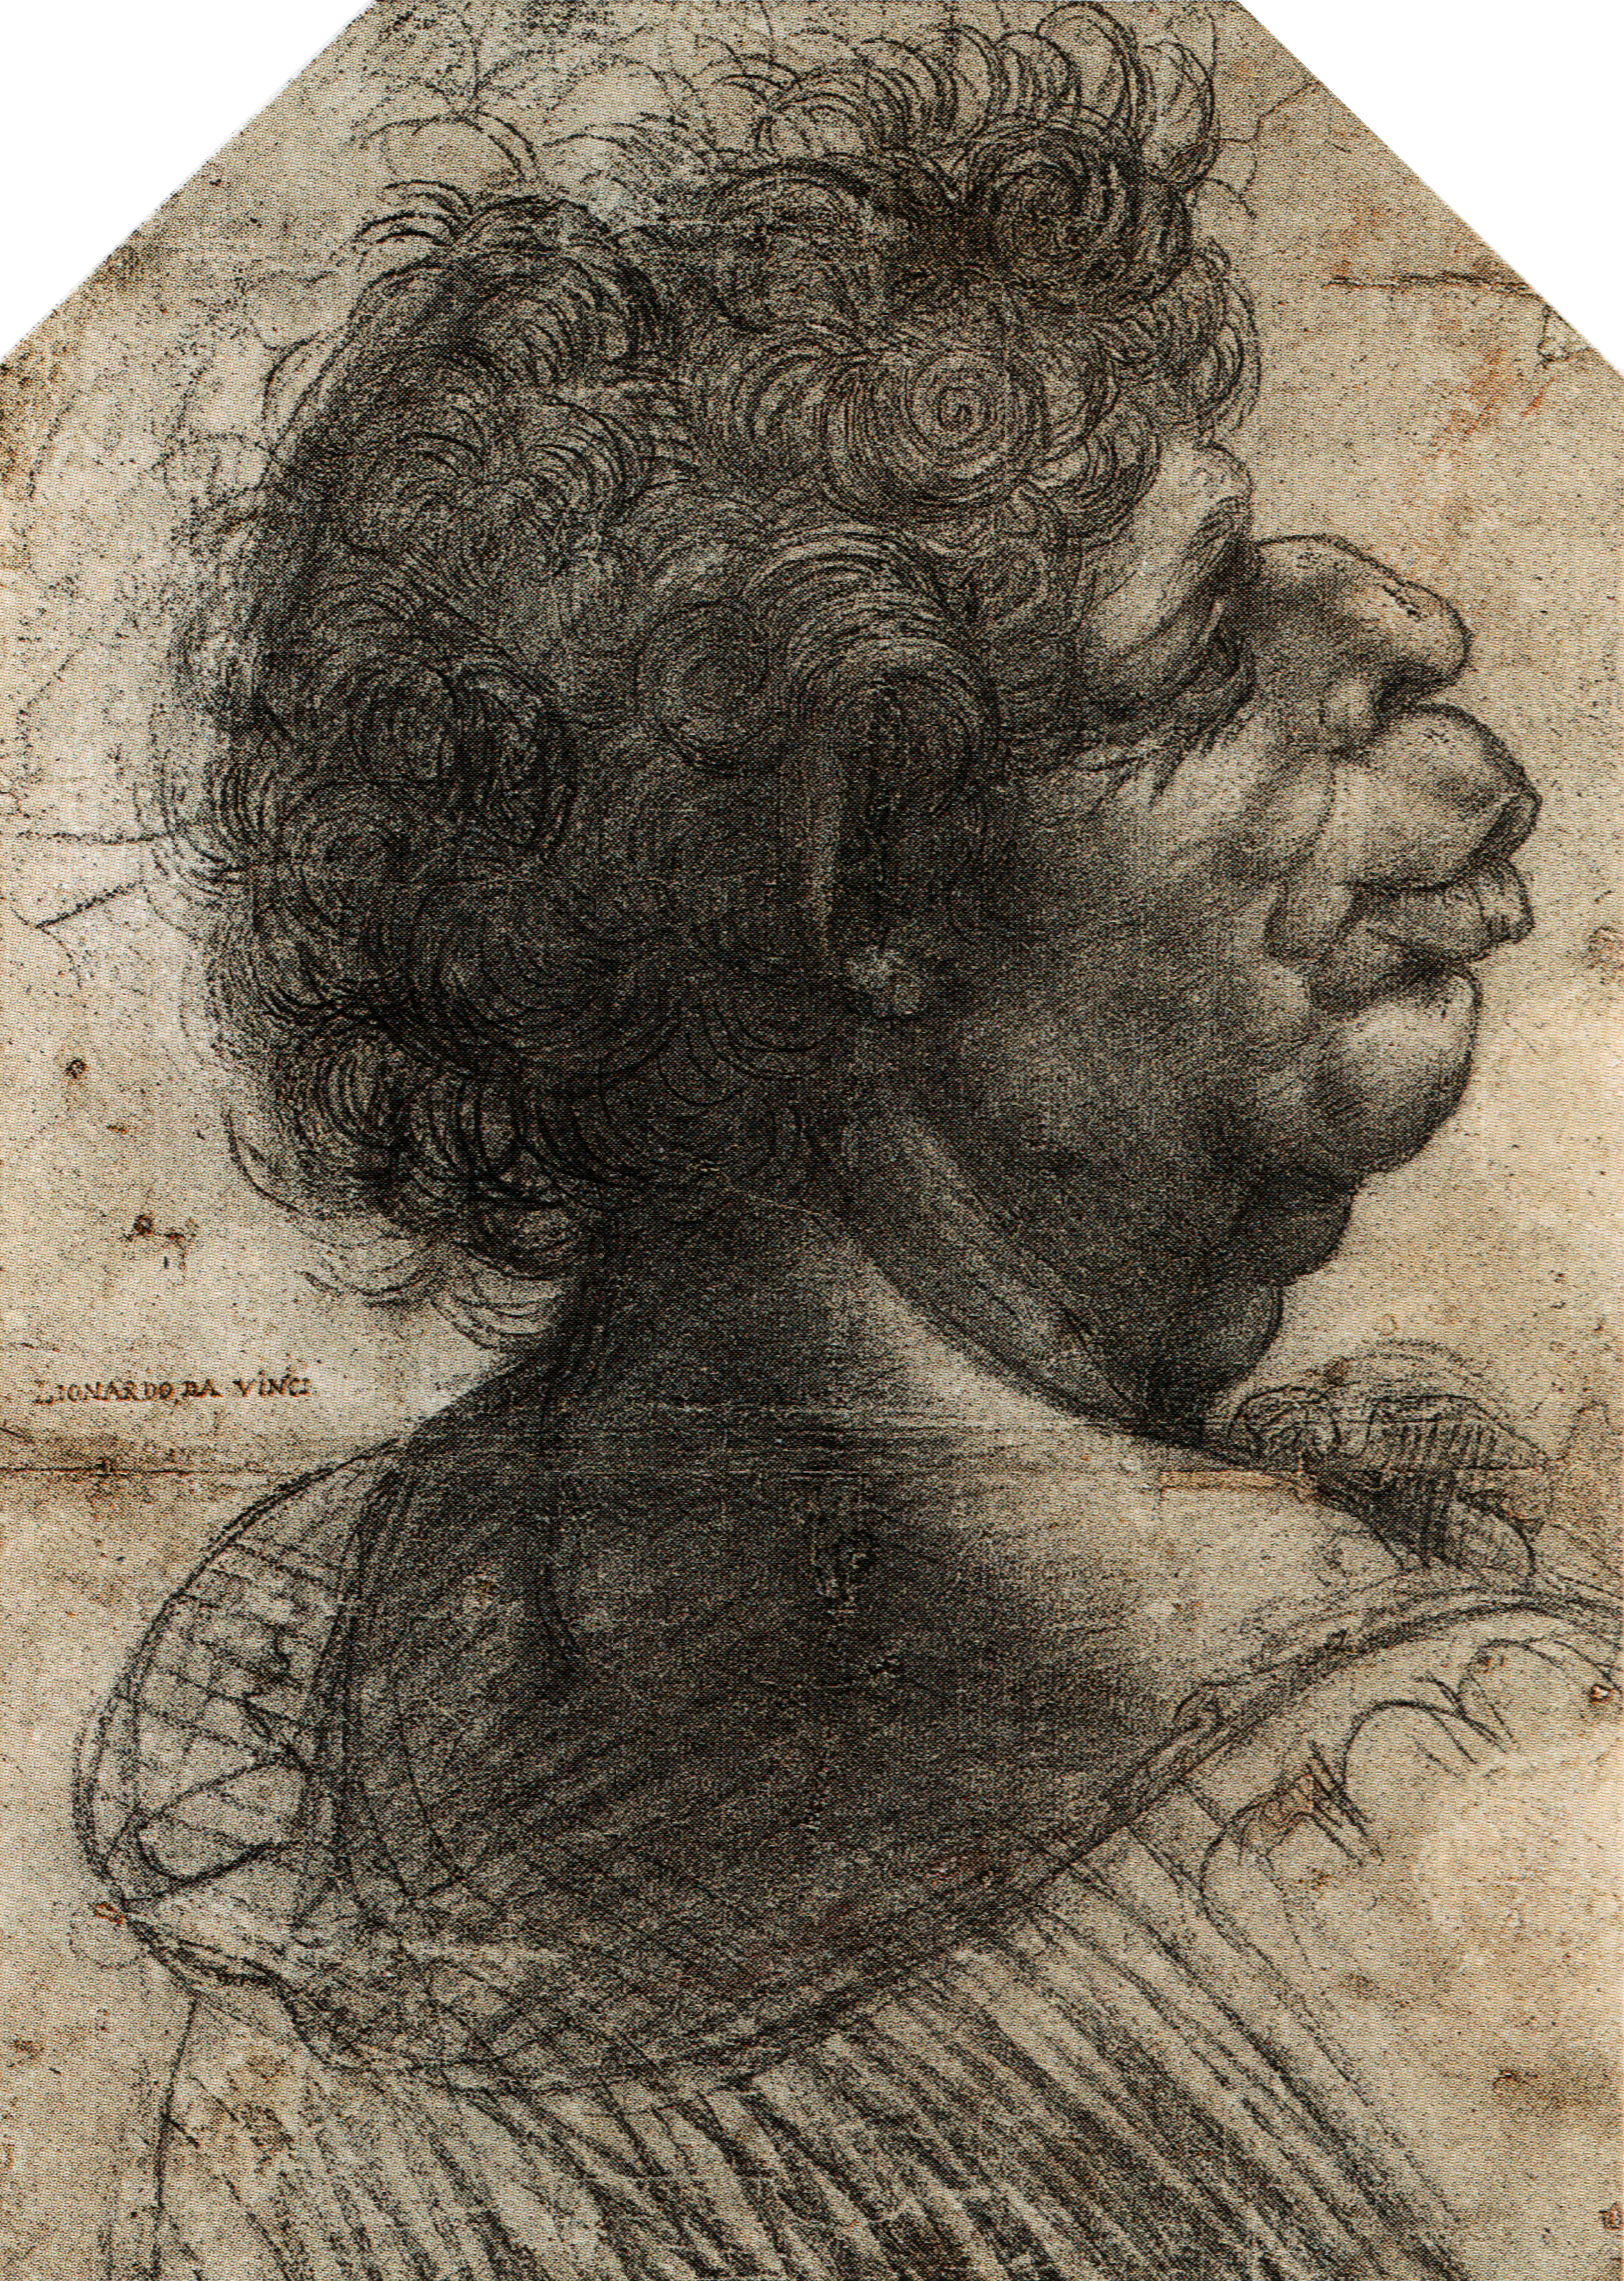 """Grotesque"" by Leonardo Da Vinci"